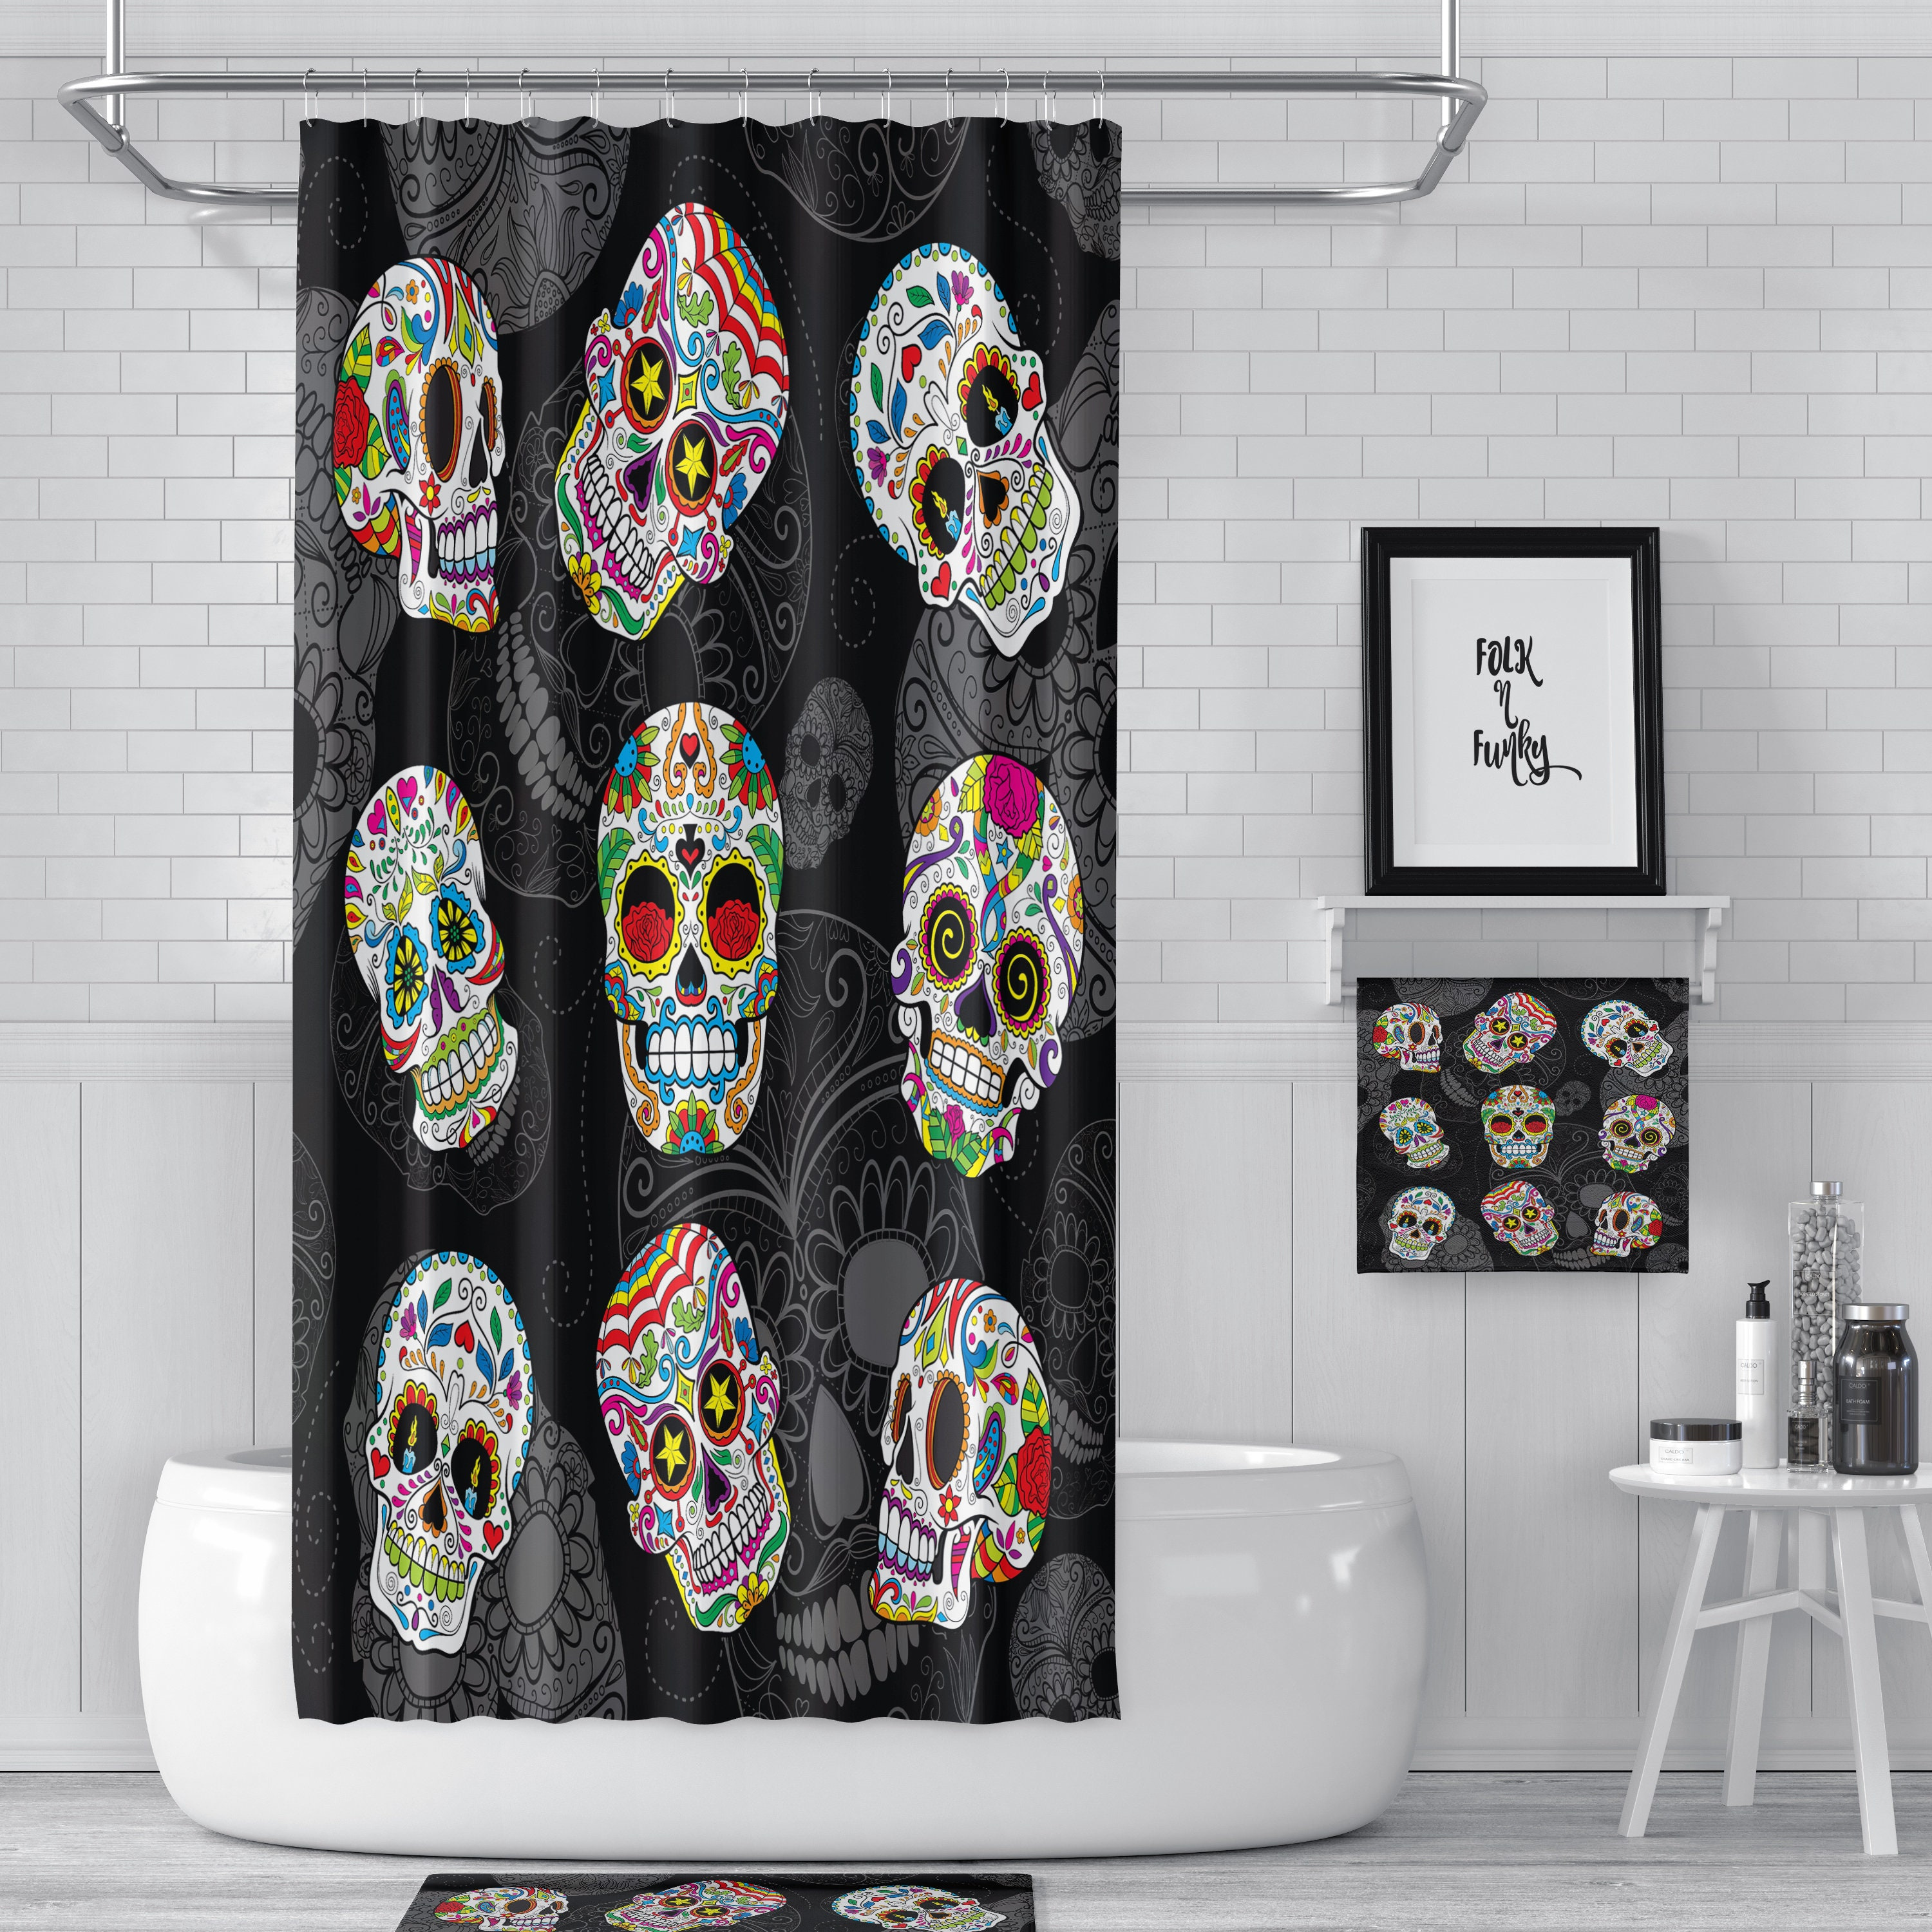 Shower Curtain, Sugar Skull, Day Of The Dead, Black ,Bath